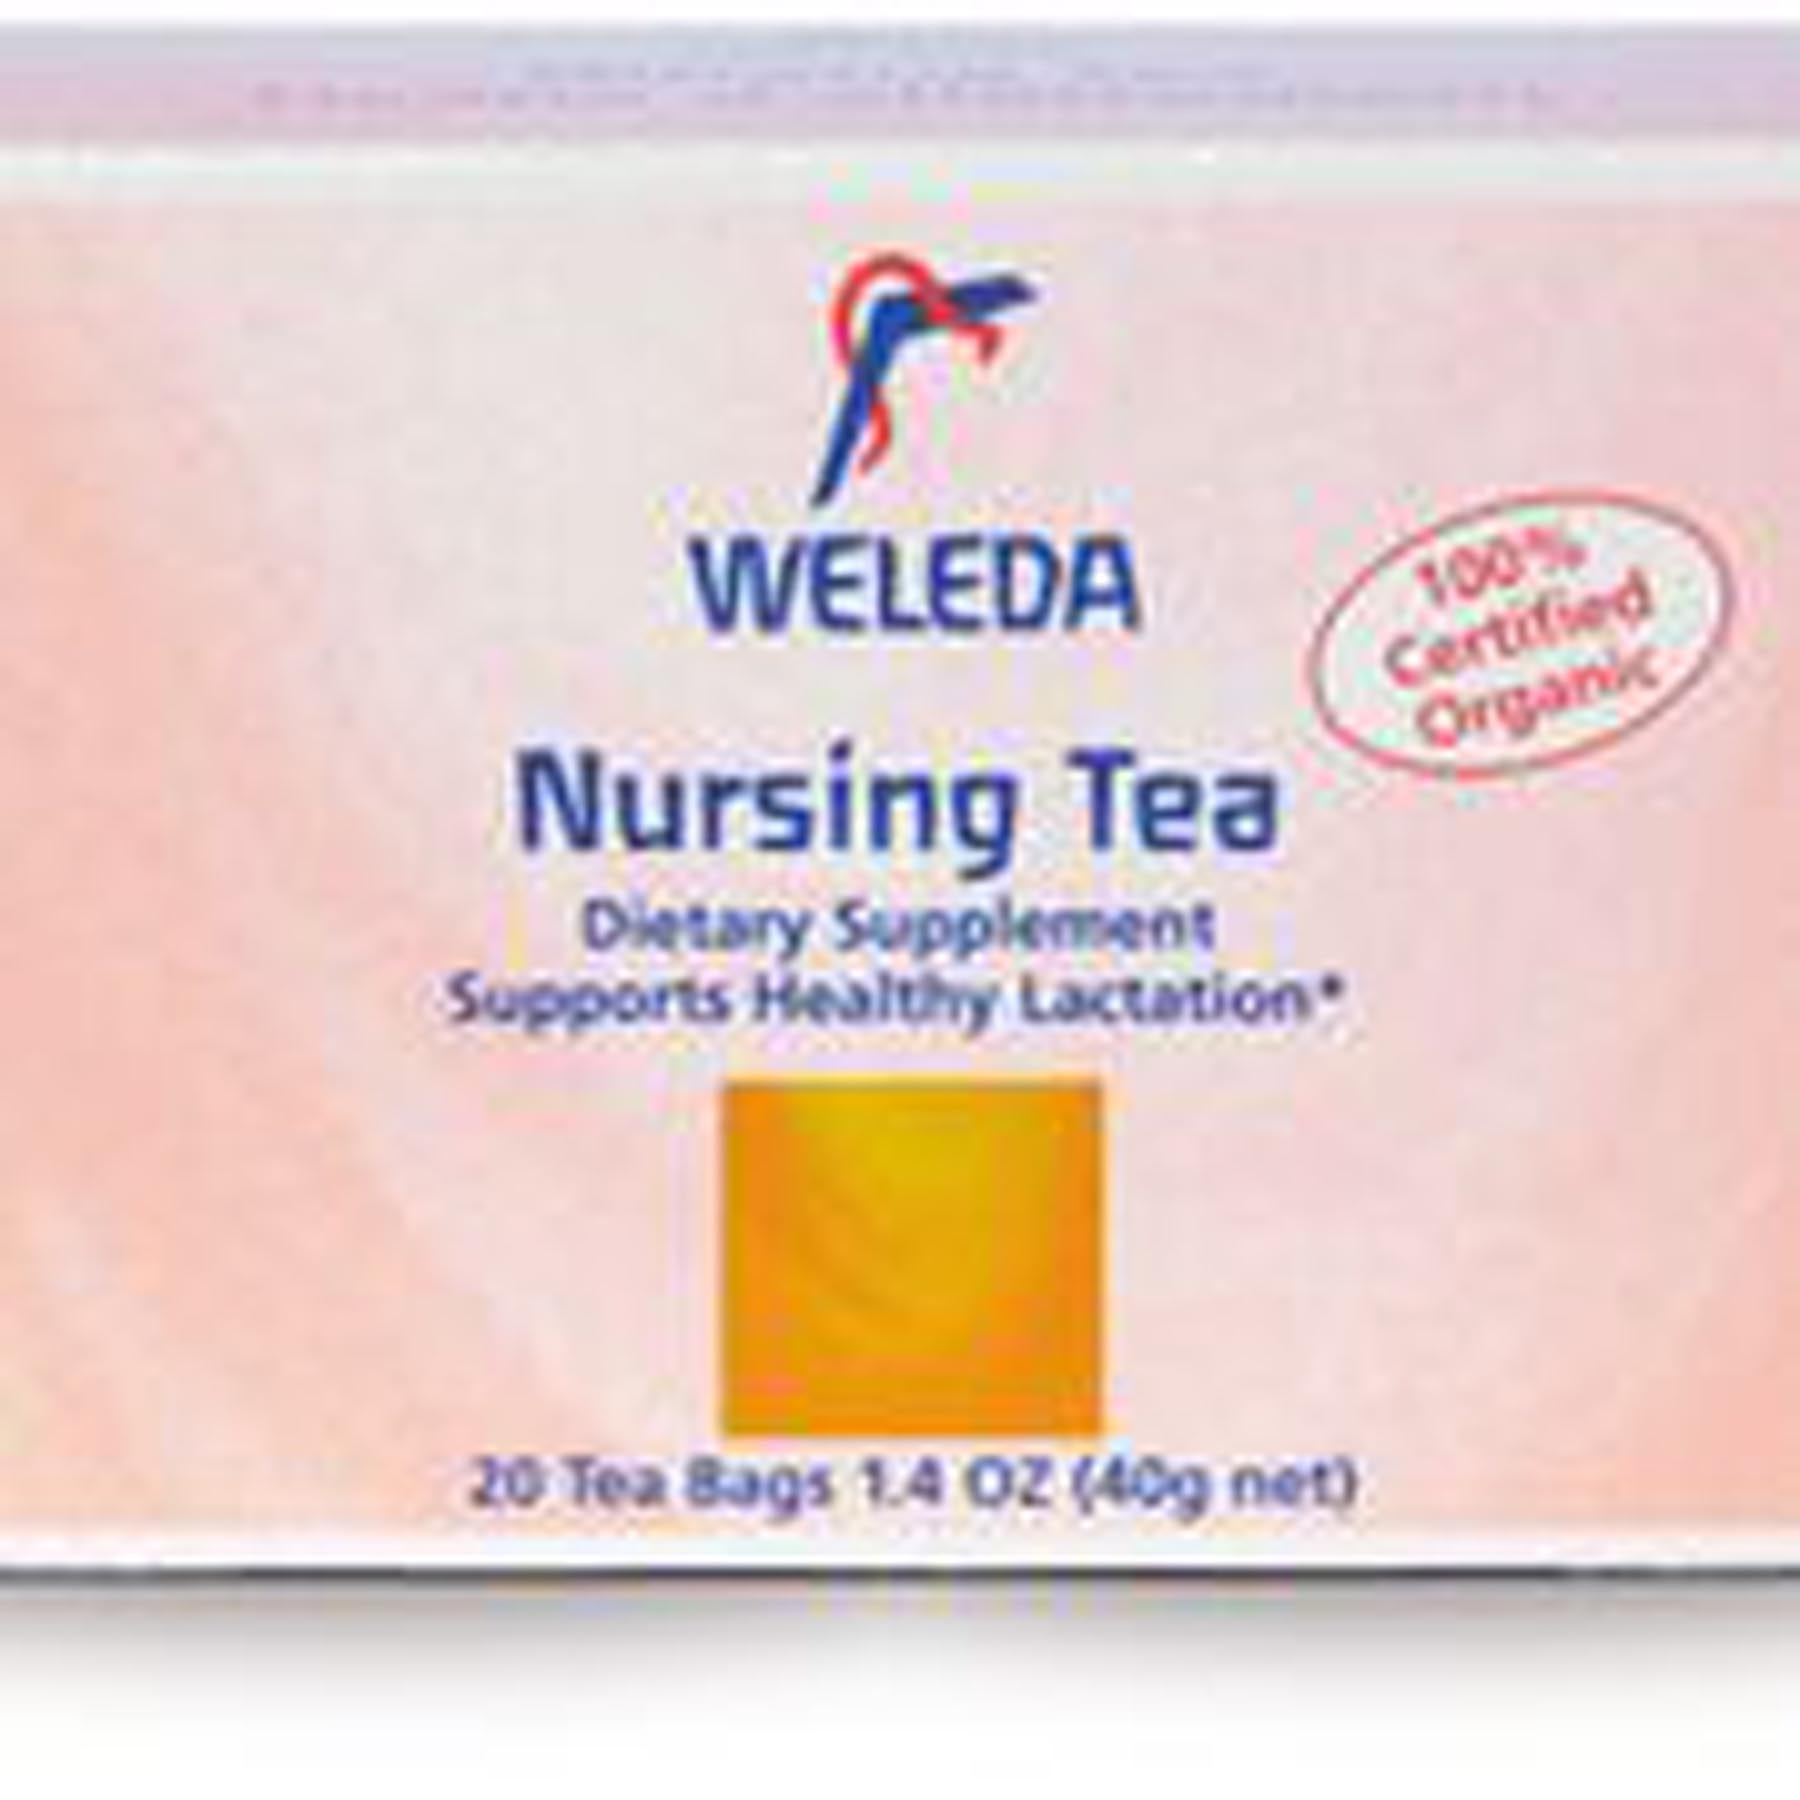 nursing tea, weleda, lactation tea, breastfeeding,